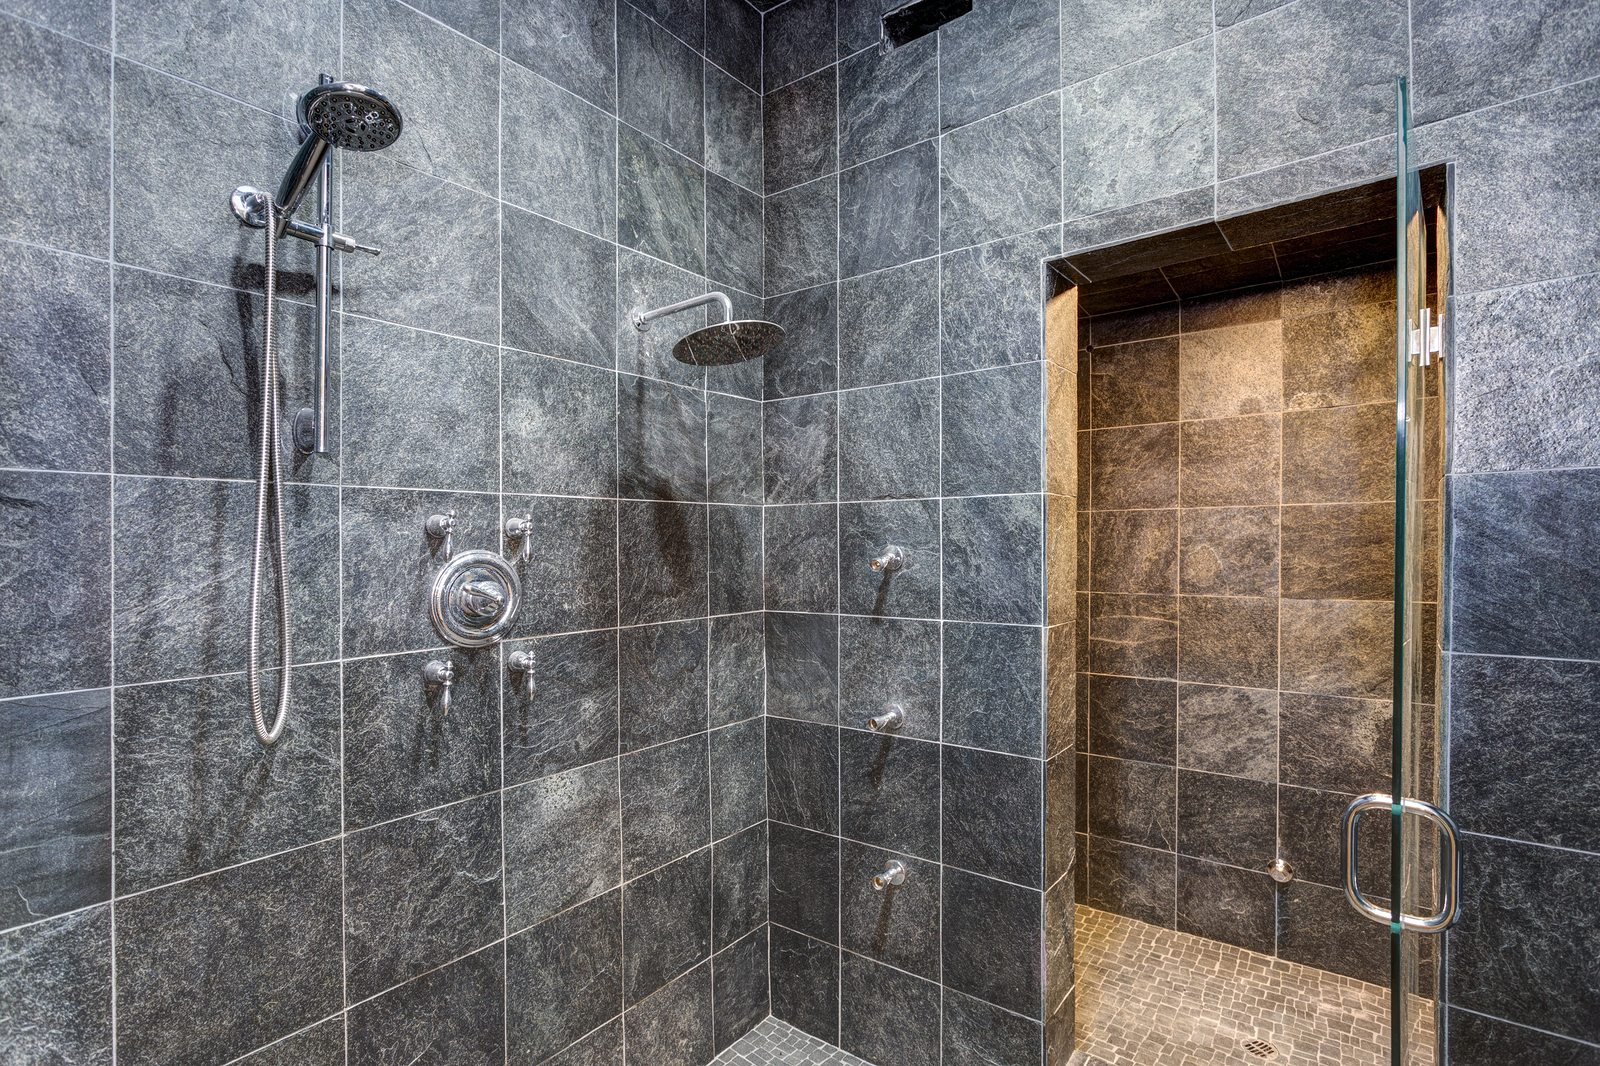 Luxurious mansion wet room style shower with black square tiled walls framing wall mount rainfall shower head.